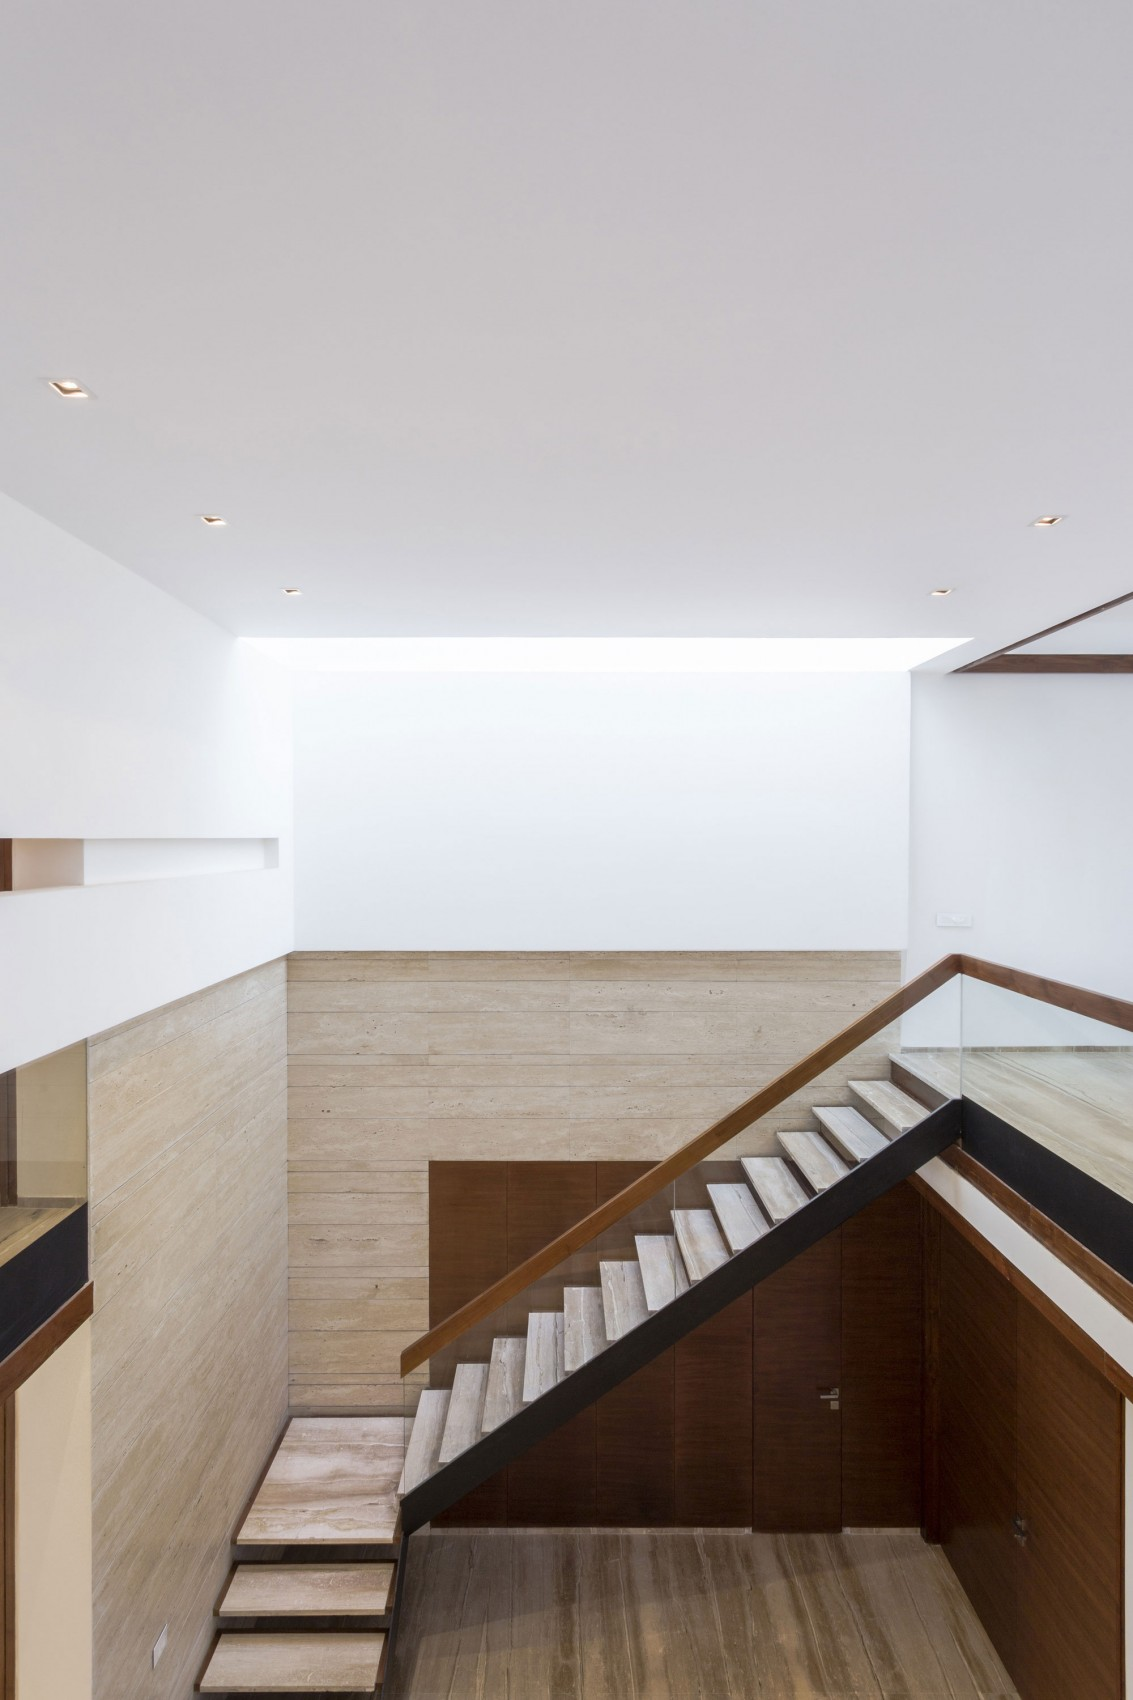 Stone Staircase - A sleek modern home with indian sensibilities and an interior courtyard